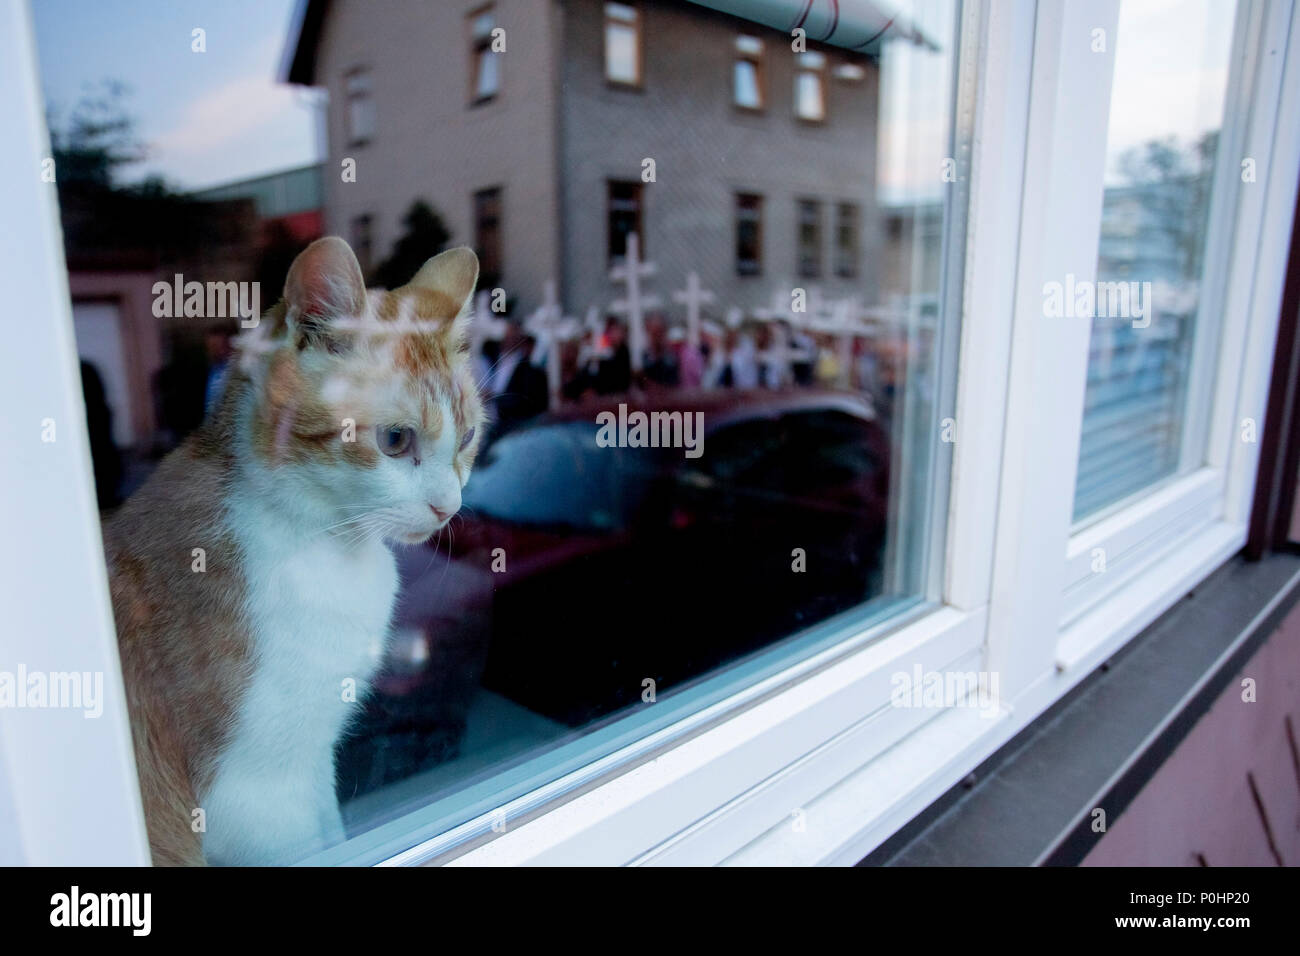 "08 June 2018, Germany, Themar: A cat looks out of a window at a counter-demonstration against the rightist festival ""Tage der nationalen Bewegung"" with people carrying white crosses through Themar. A total of 194 crosses were carried at the demo, of which 193 commemorate those killed by right-wing violence in Germany since 1990, and one commemorates Martin Luther King. Photo: -/dpa Stock Photo"